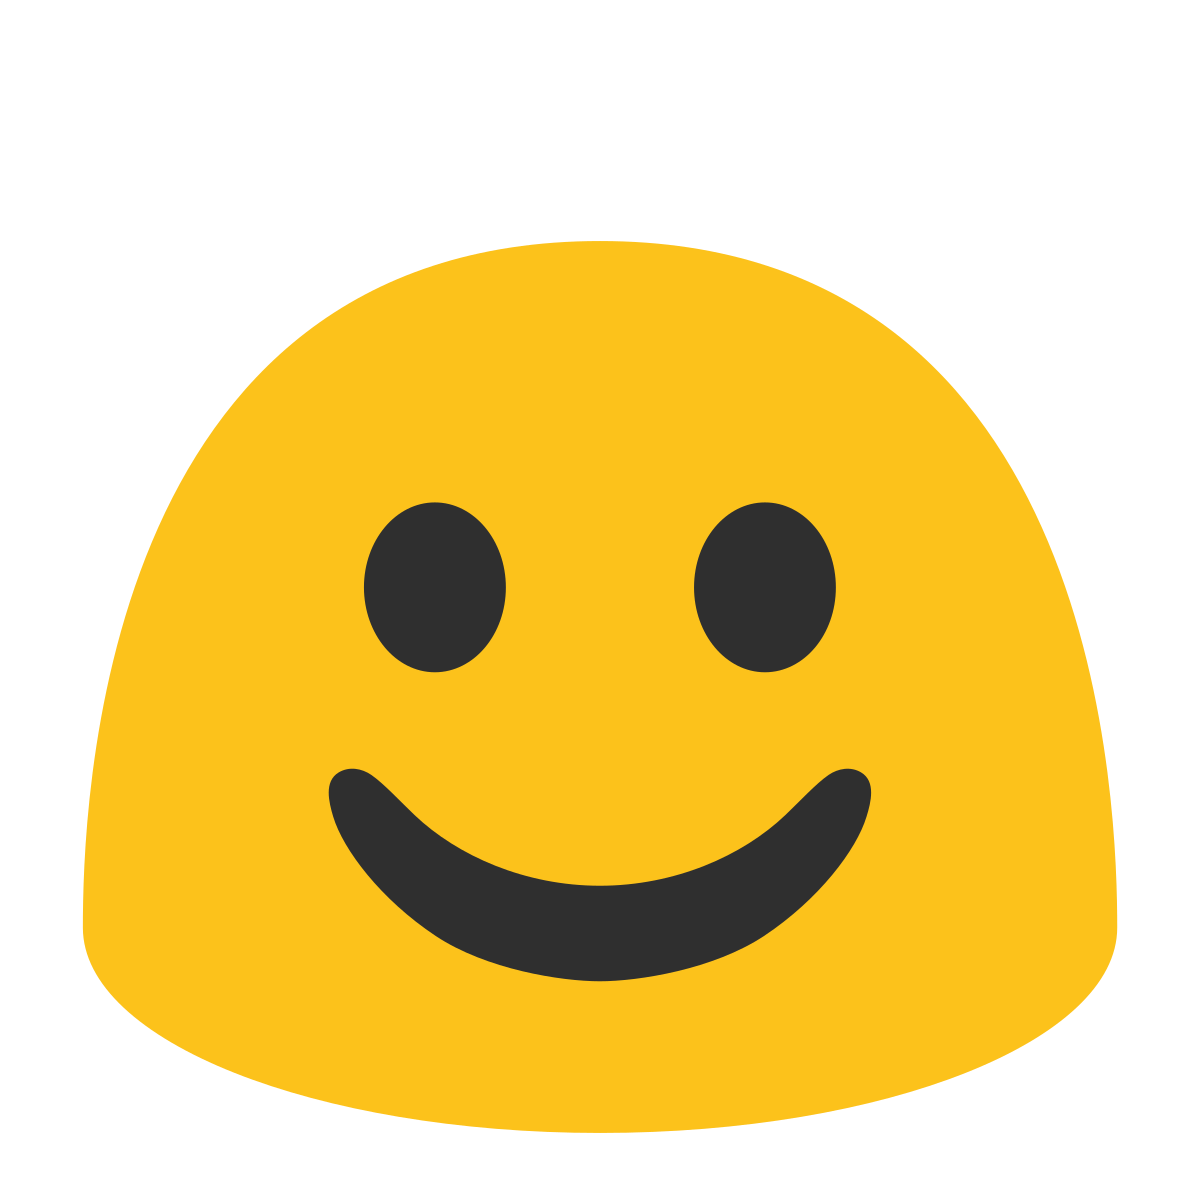 Fathers Day Emoji Images